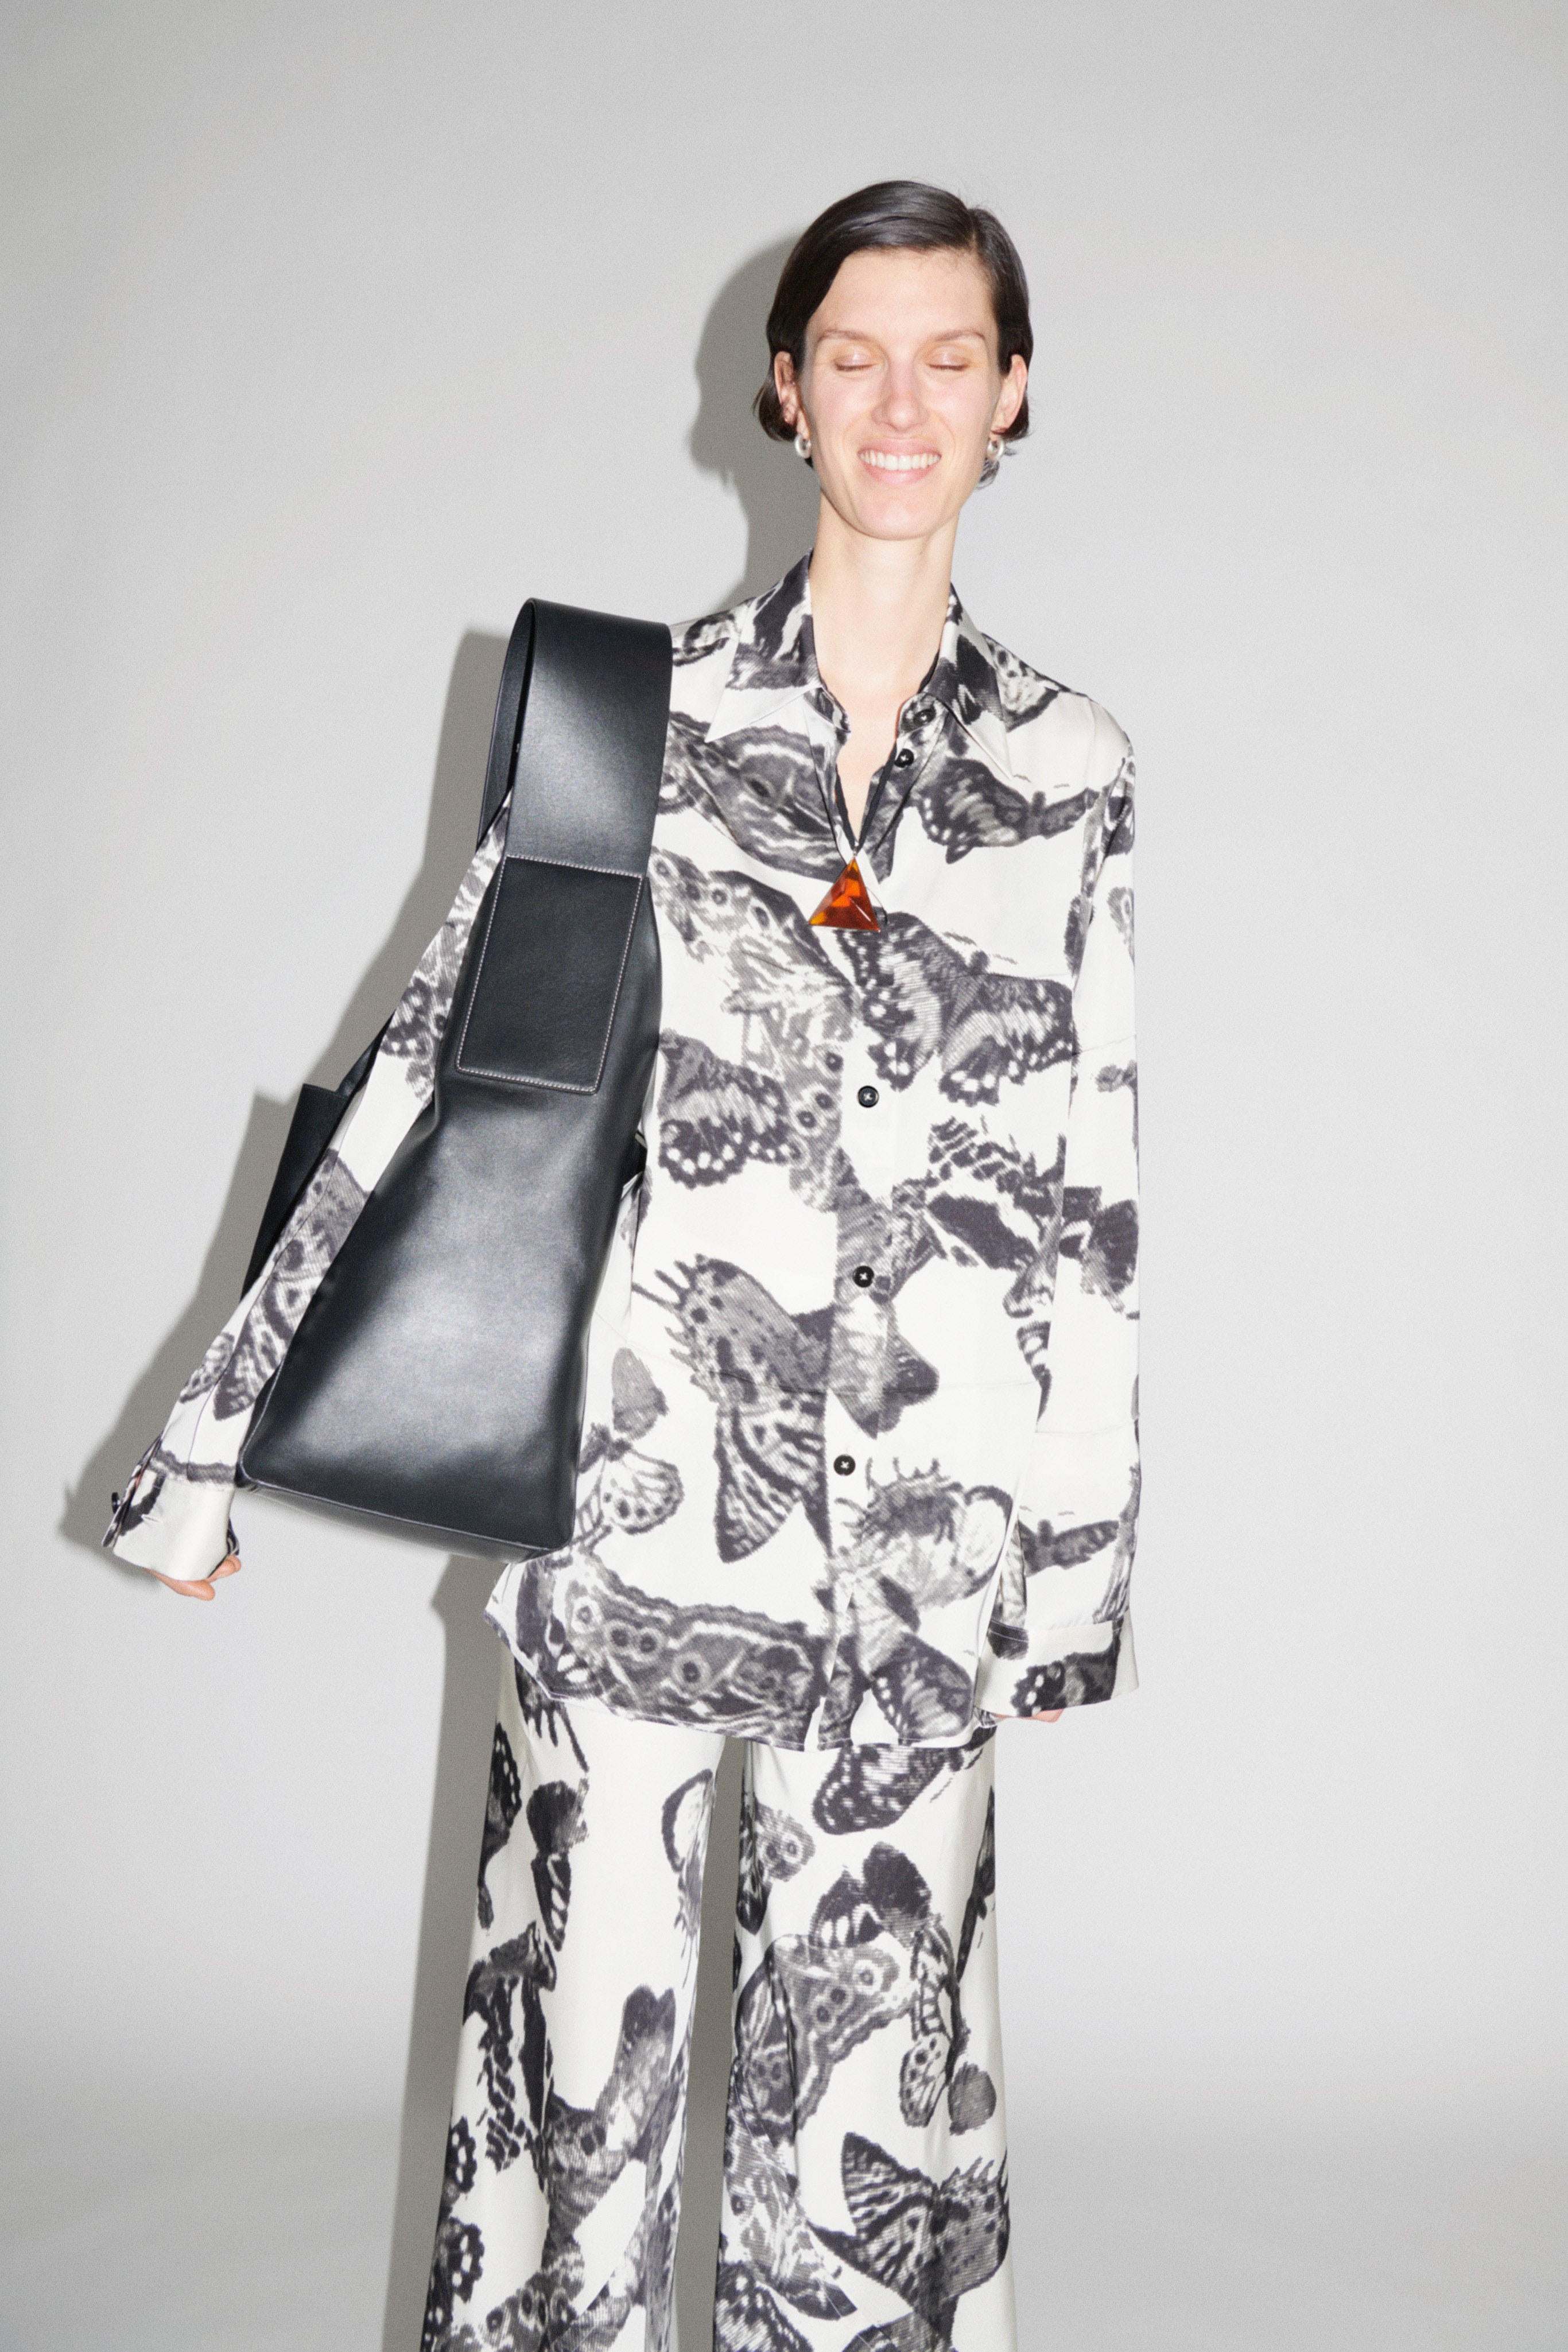 For walks in the fresh air: A seasonal collection of Jil Sander arrived at Asthik (photo 20)